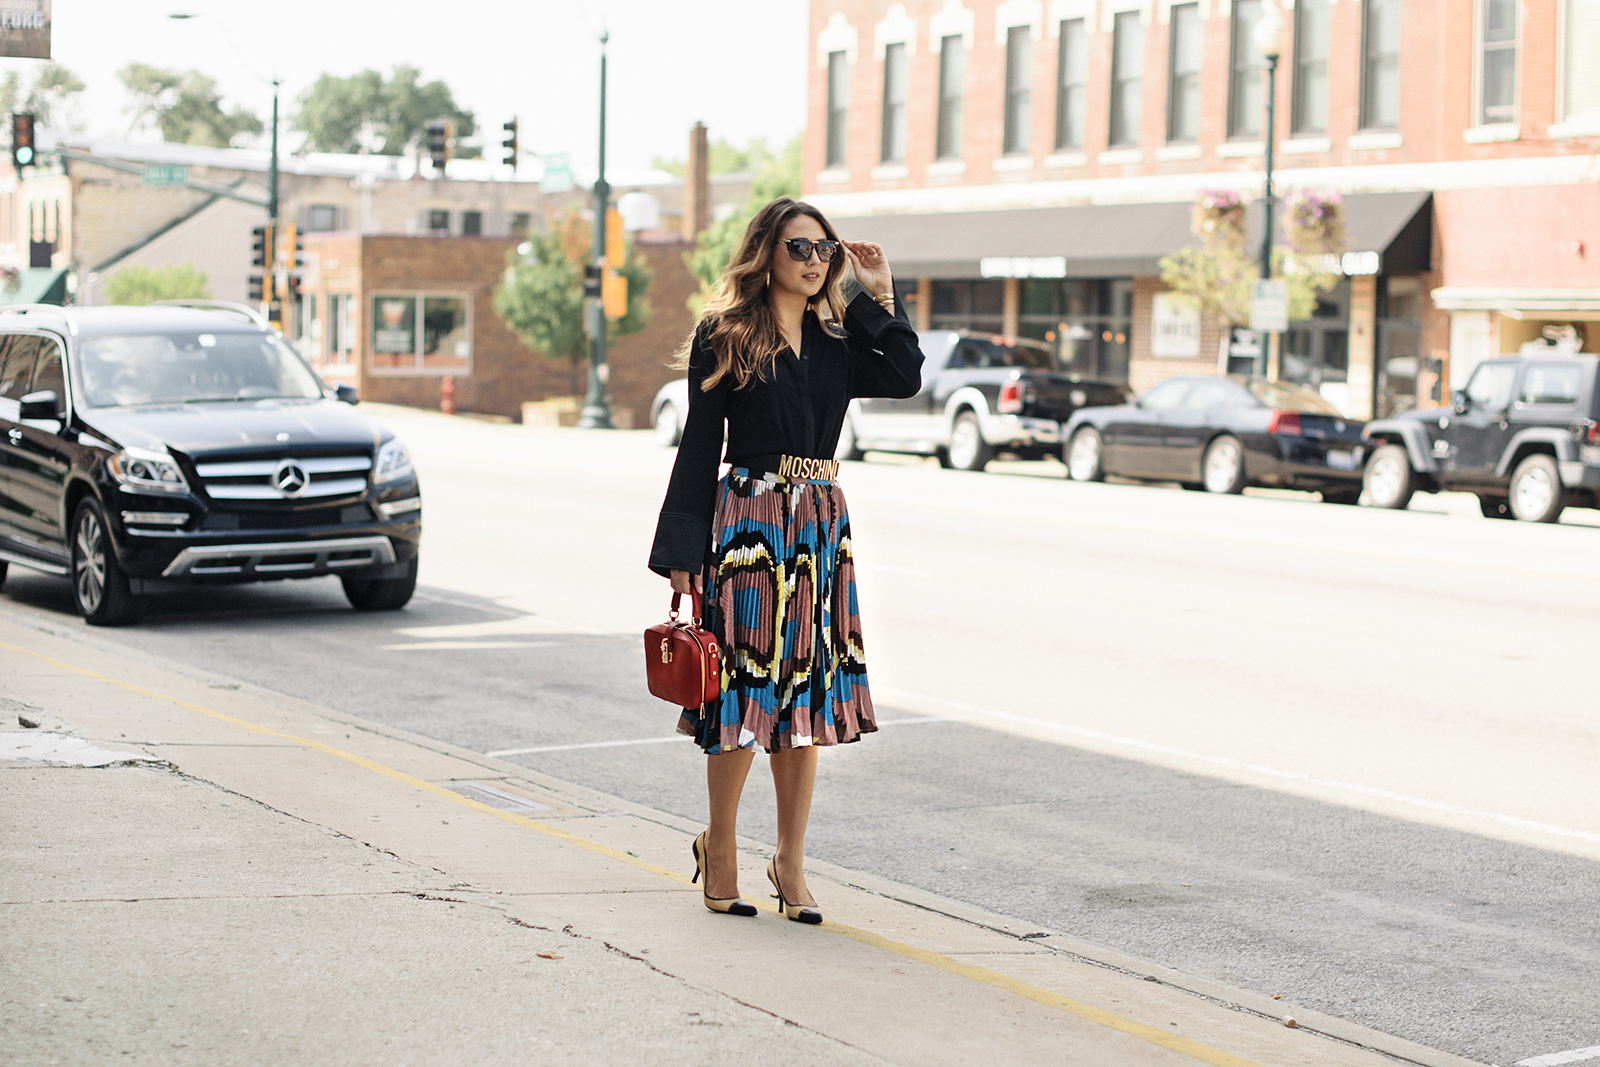 fashionable-outfit-skirt-collared-shirt